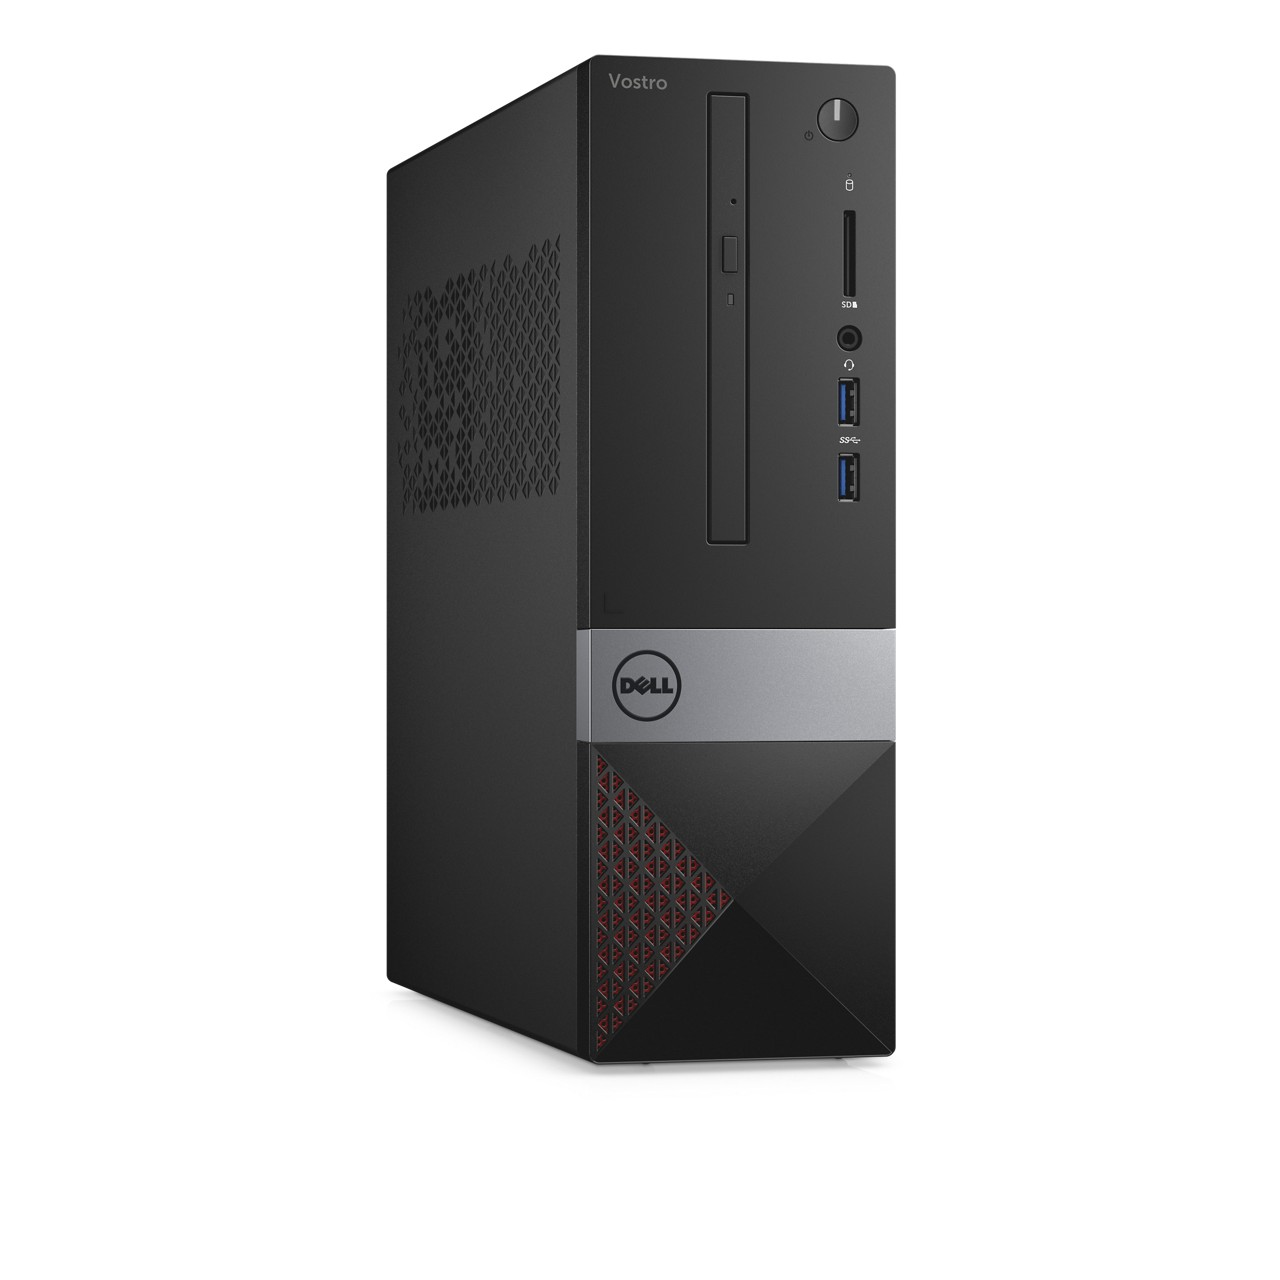 DELL Vostro 3268 SFF/i5-7400/4GB/1TB/Intel HD/DVD-RW/Win10Pro